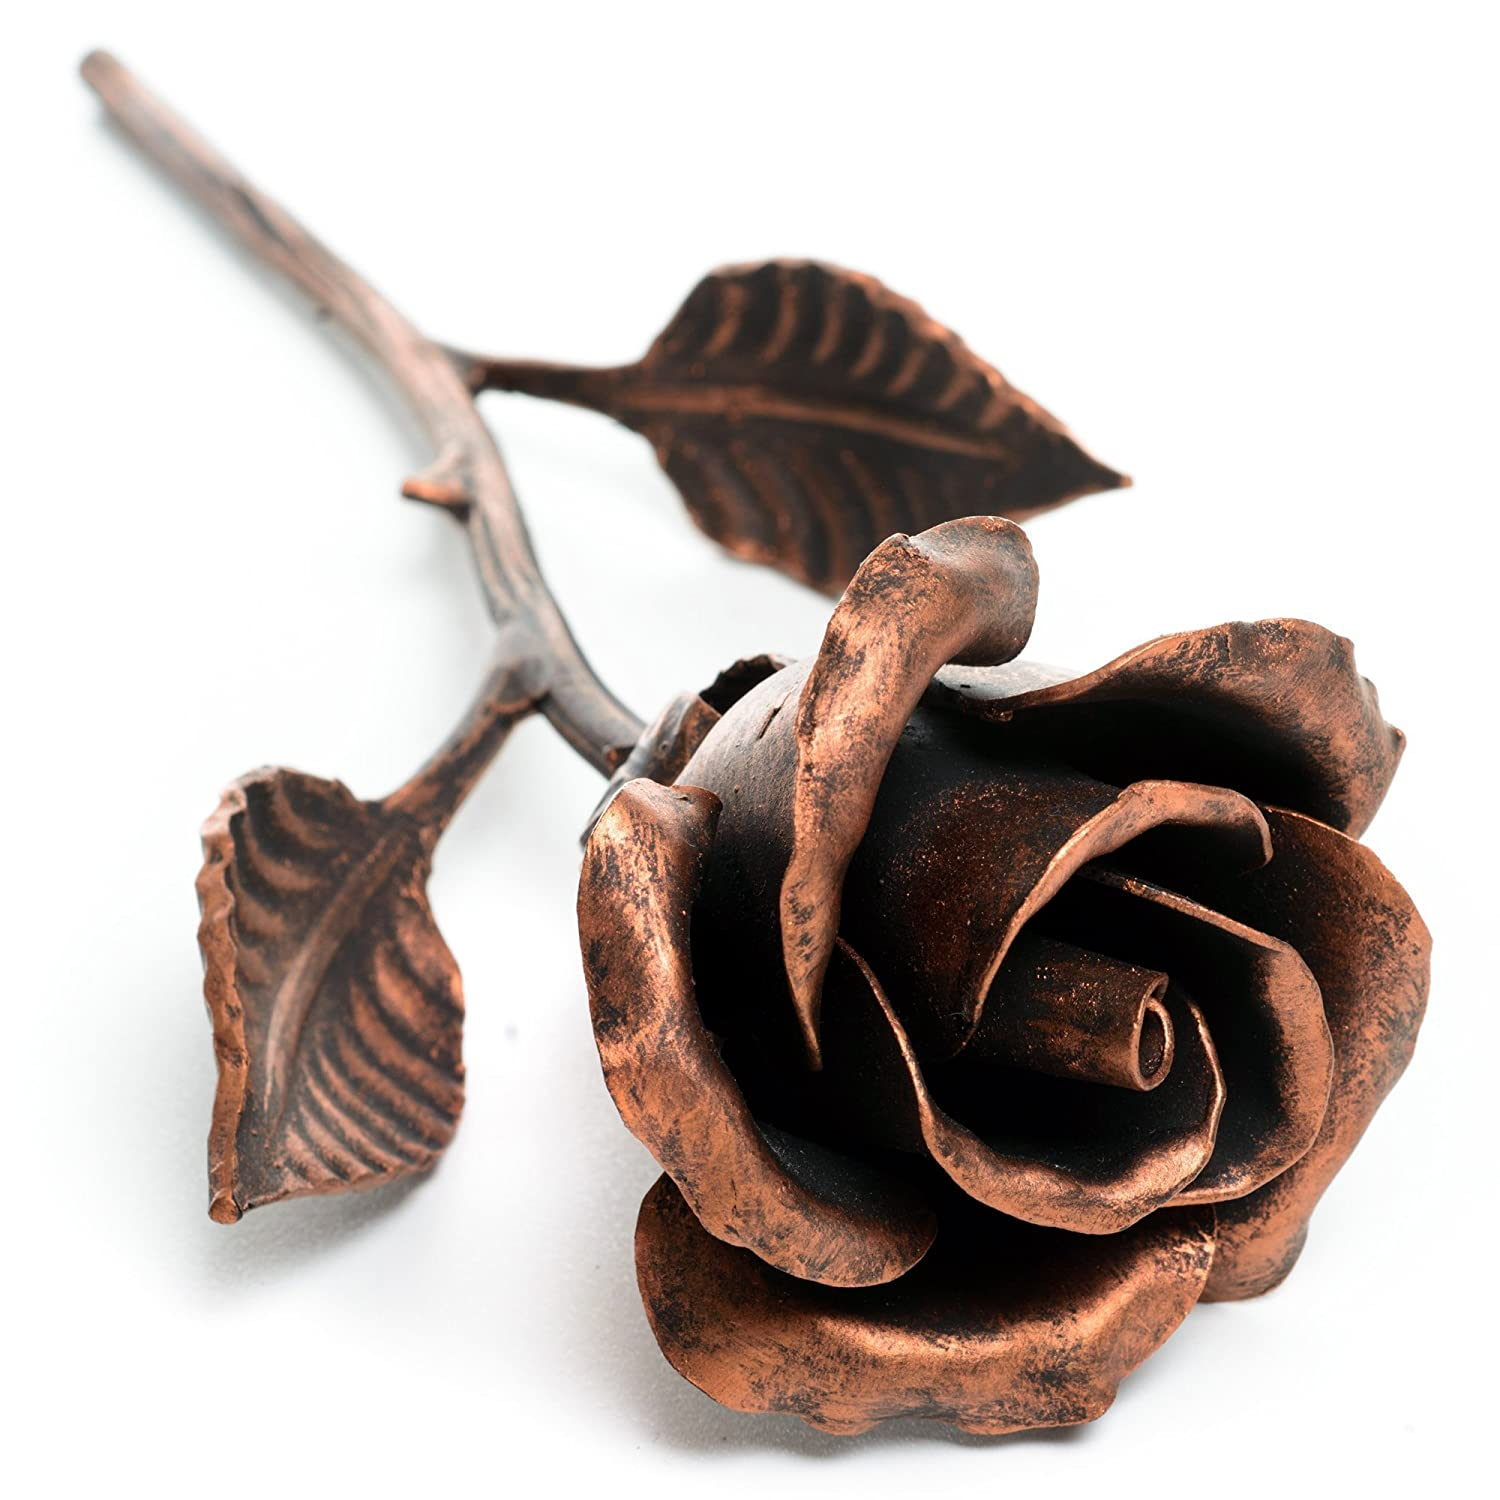 Hand Forged 7th Anniversary Gift 'Copper' Steel Rose Sculpture